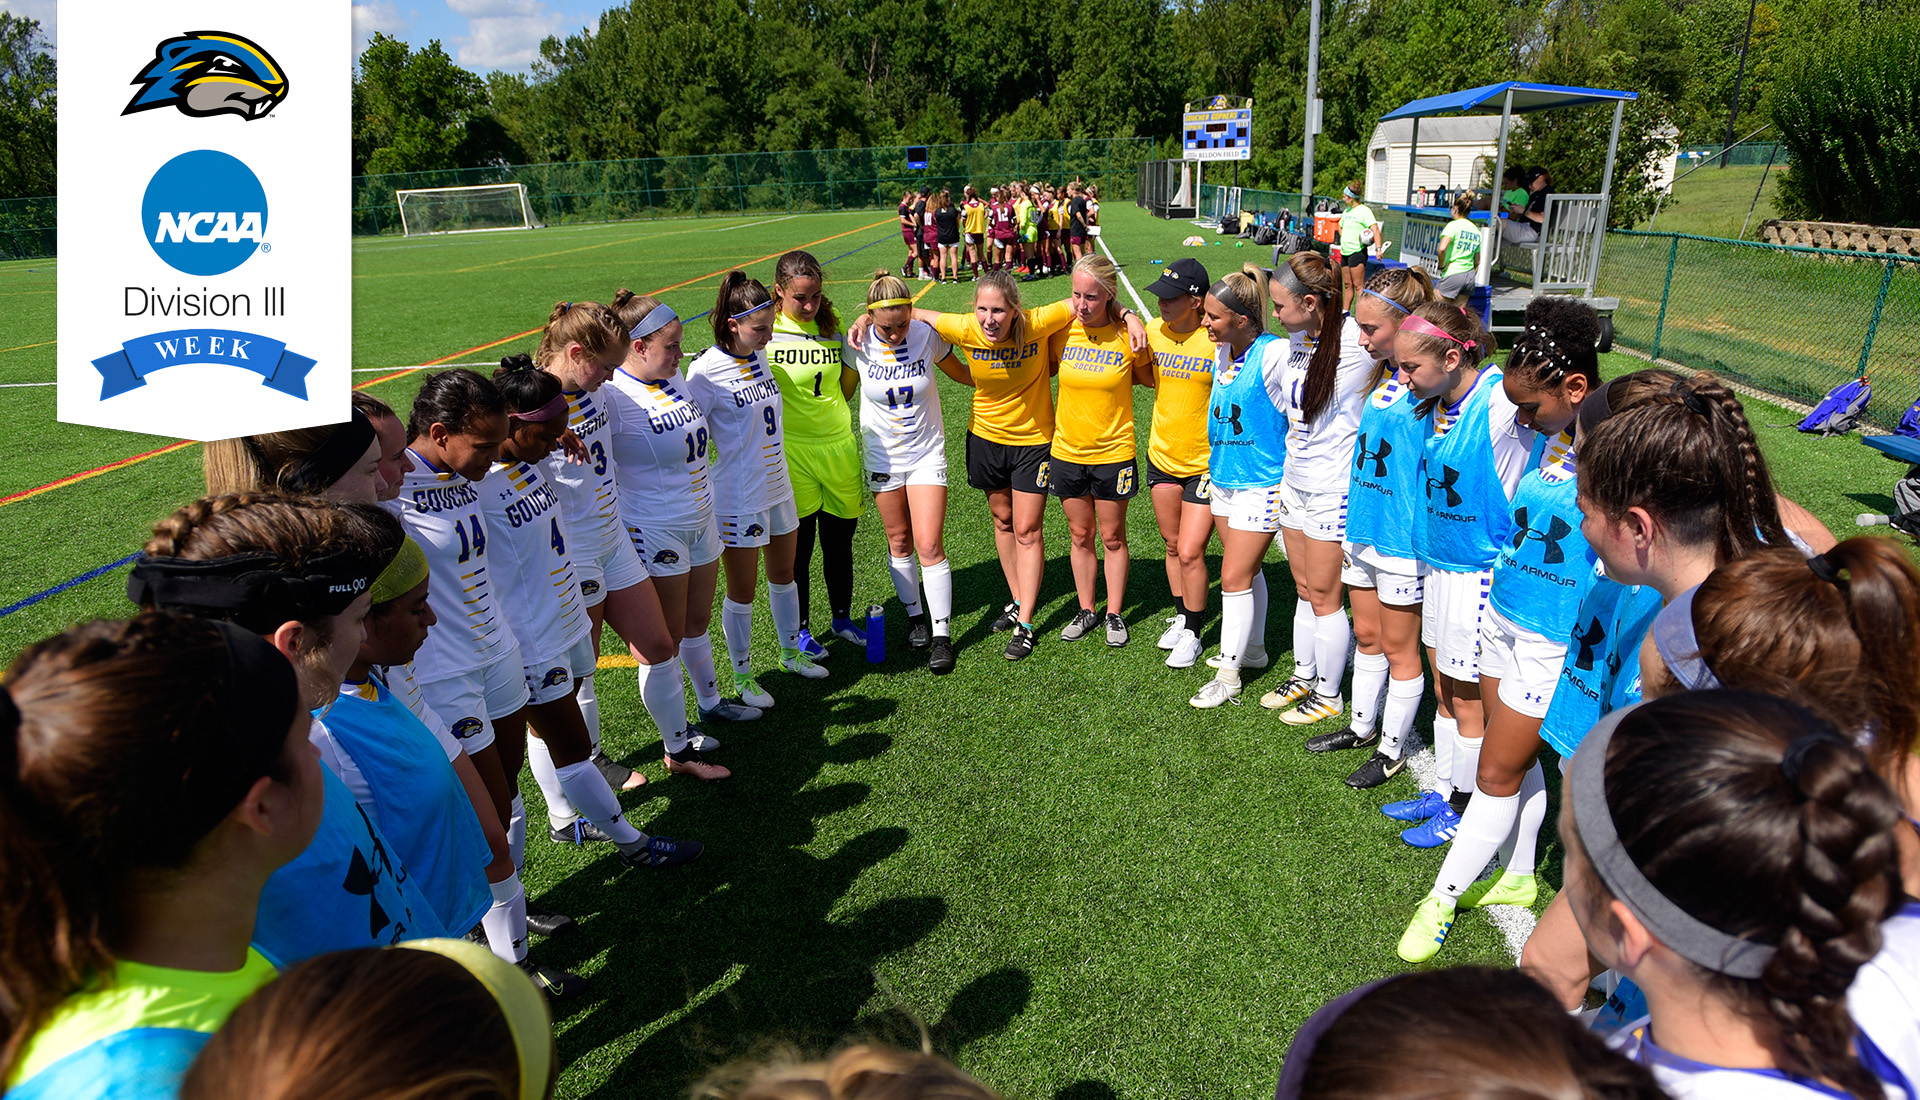 NCAA Division III Week: Questions & Answers With Goucher Women's Soccer Head Coach Stephanie Ricketts